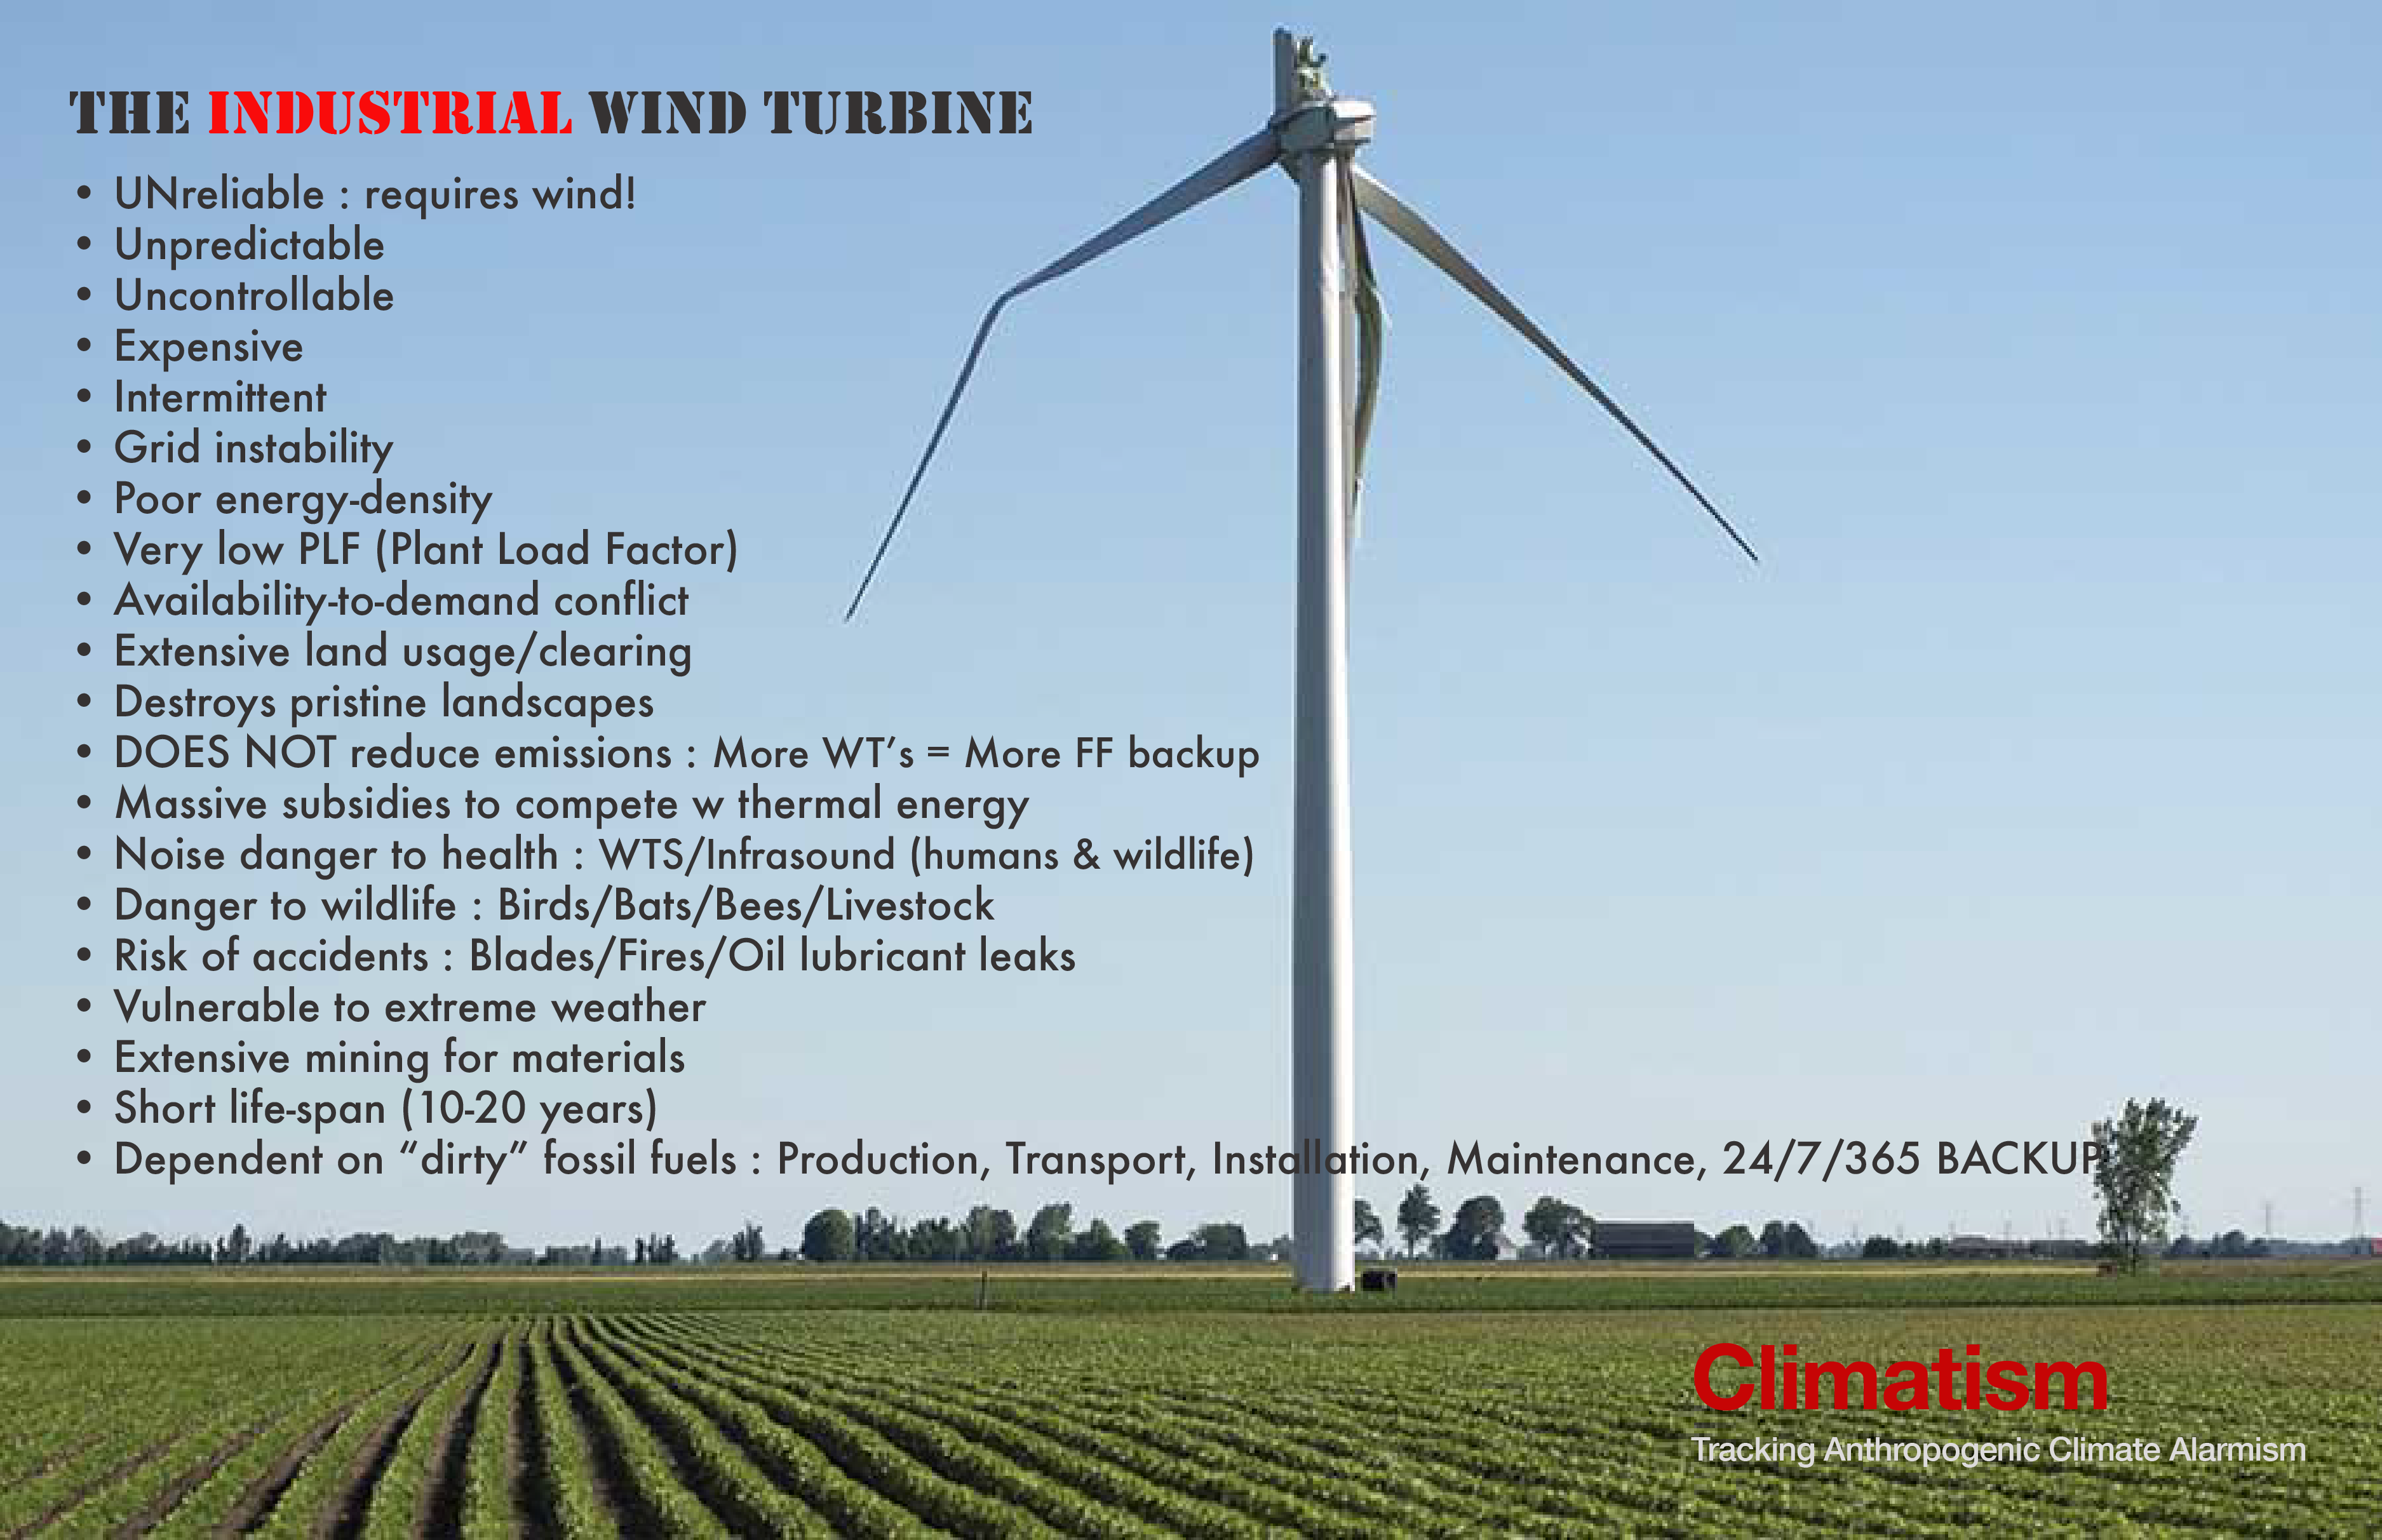 INDUTSRIAL WIND TURBINES - THE FLAWS.png